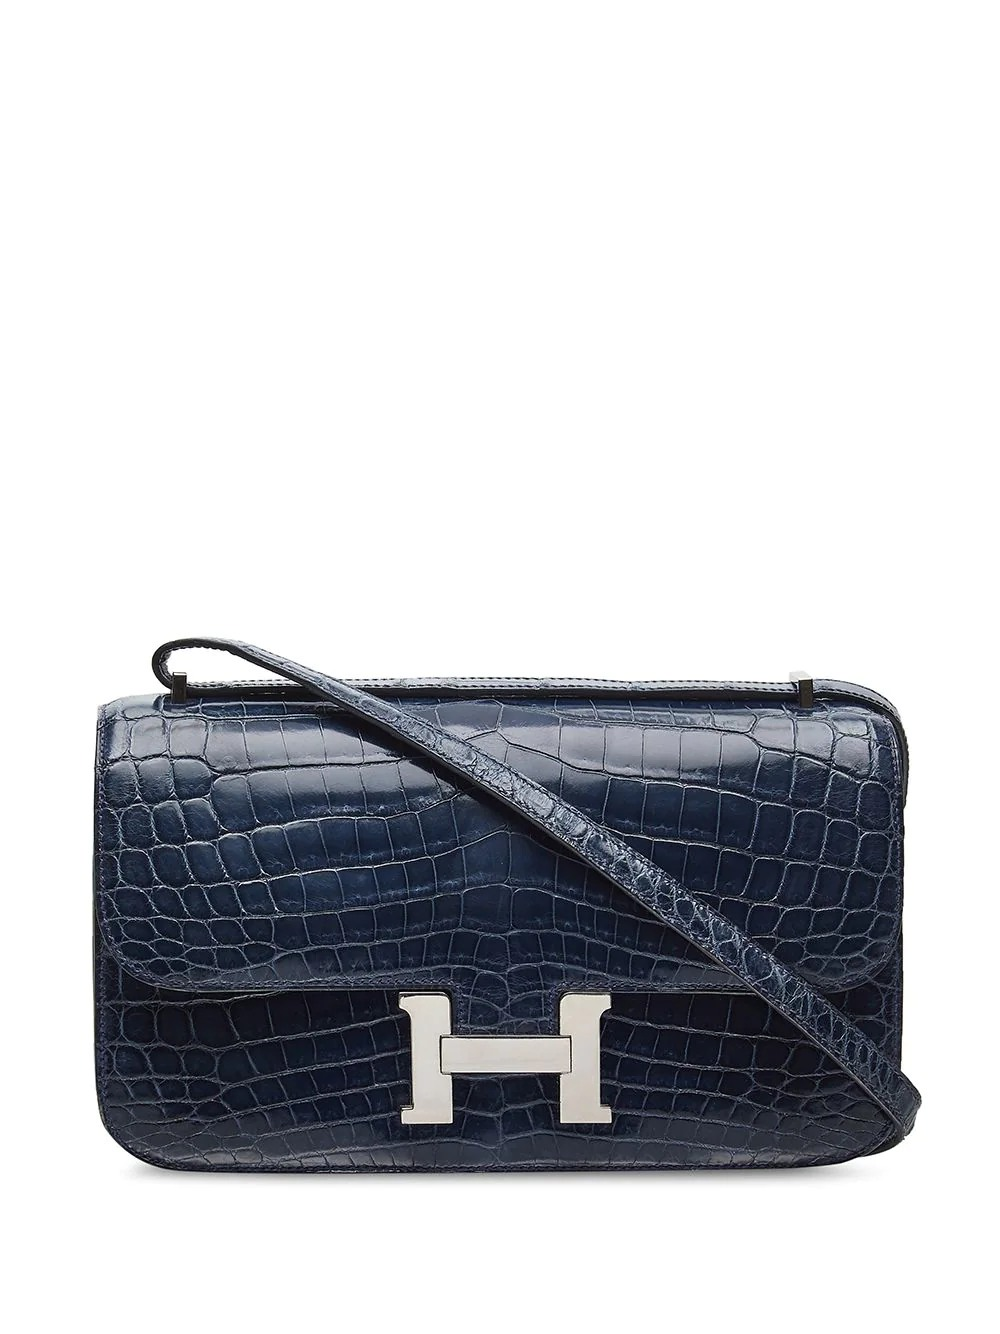 hermes-constance-elan-bag-croc-effect-leather-navy-blue-farfetch